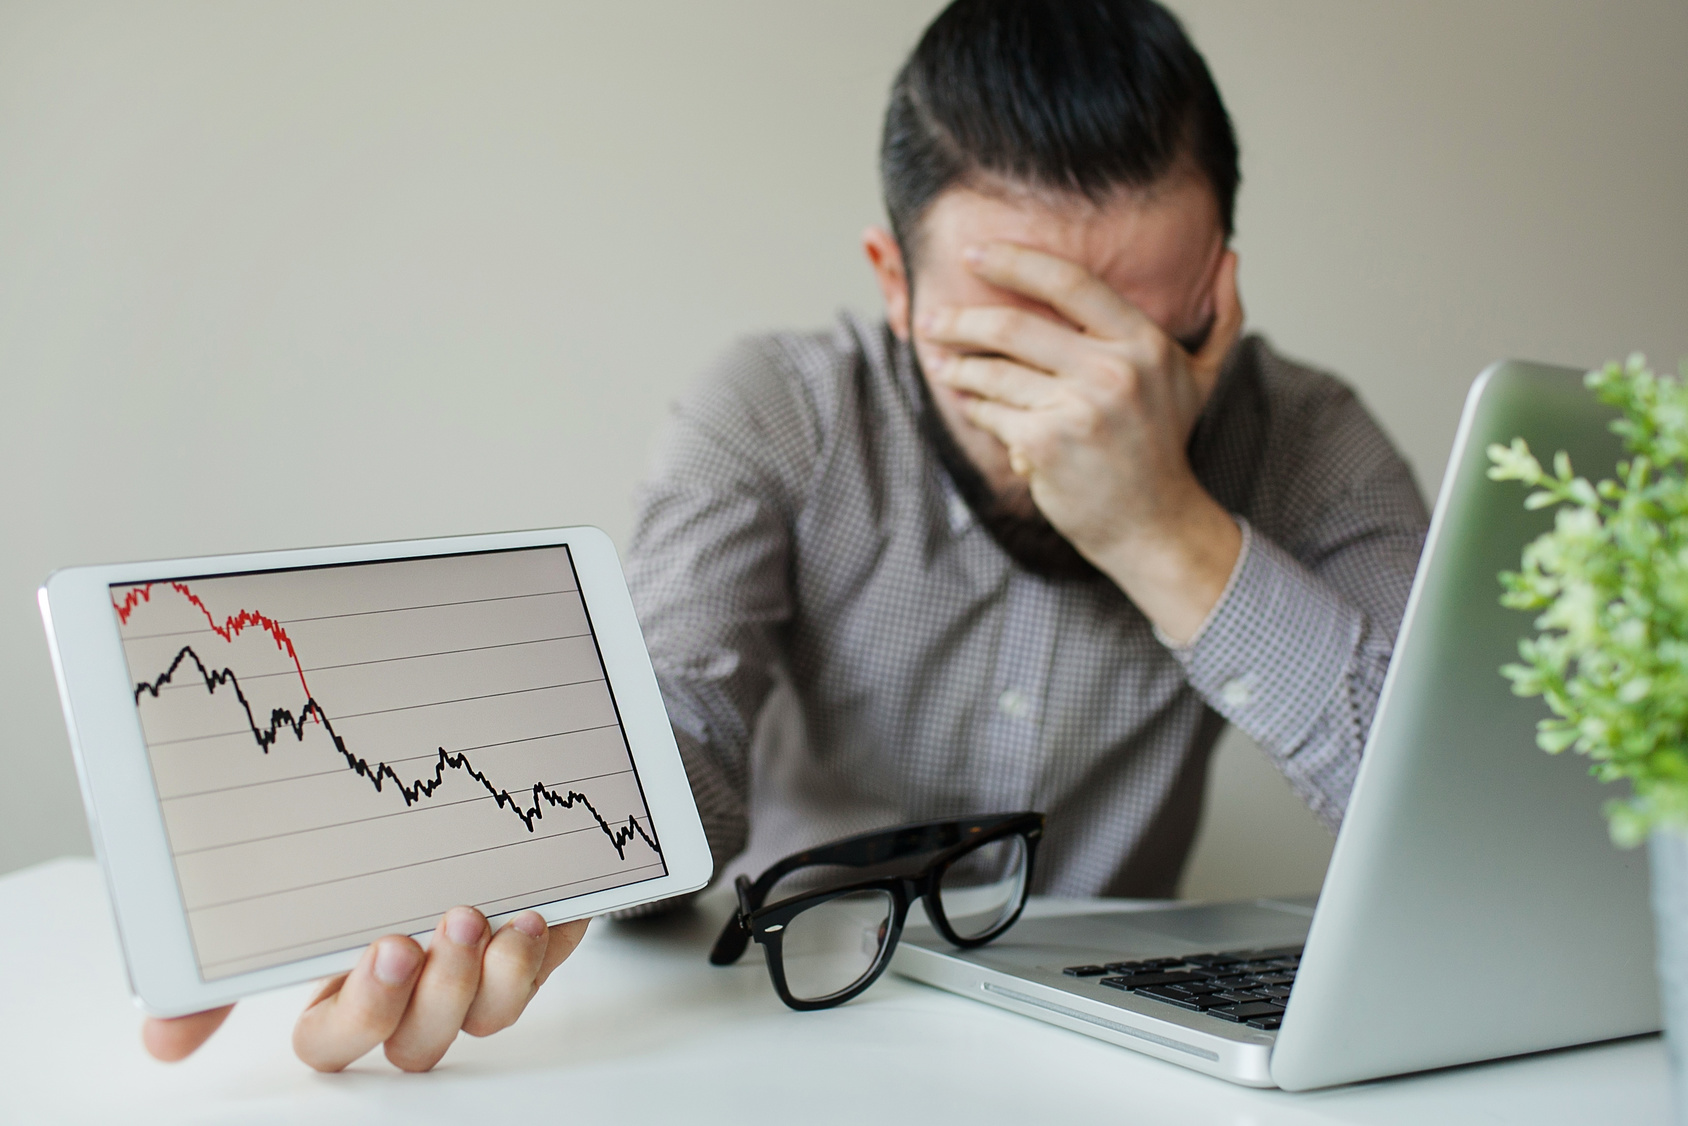 Depressed businessman leaning head below bad stock market chart in office